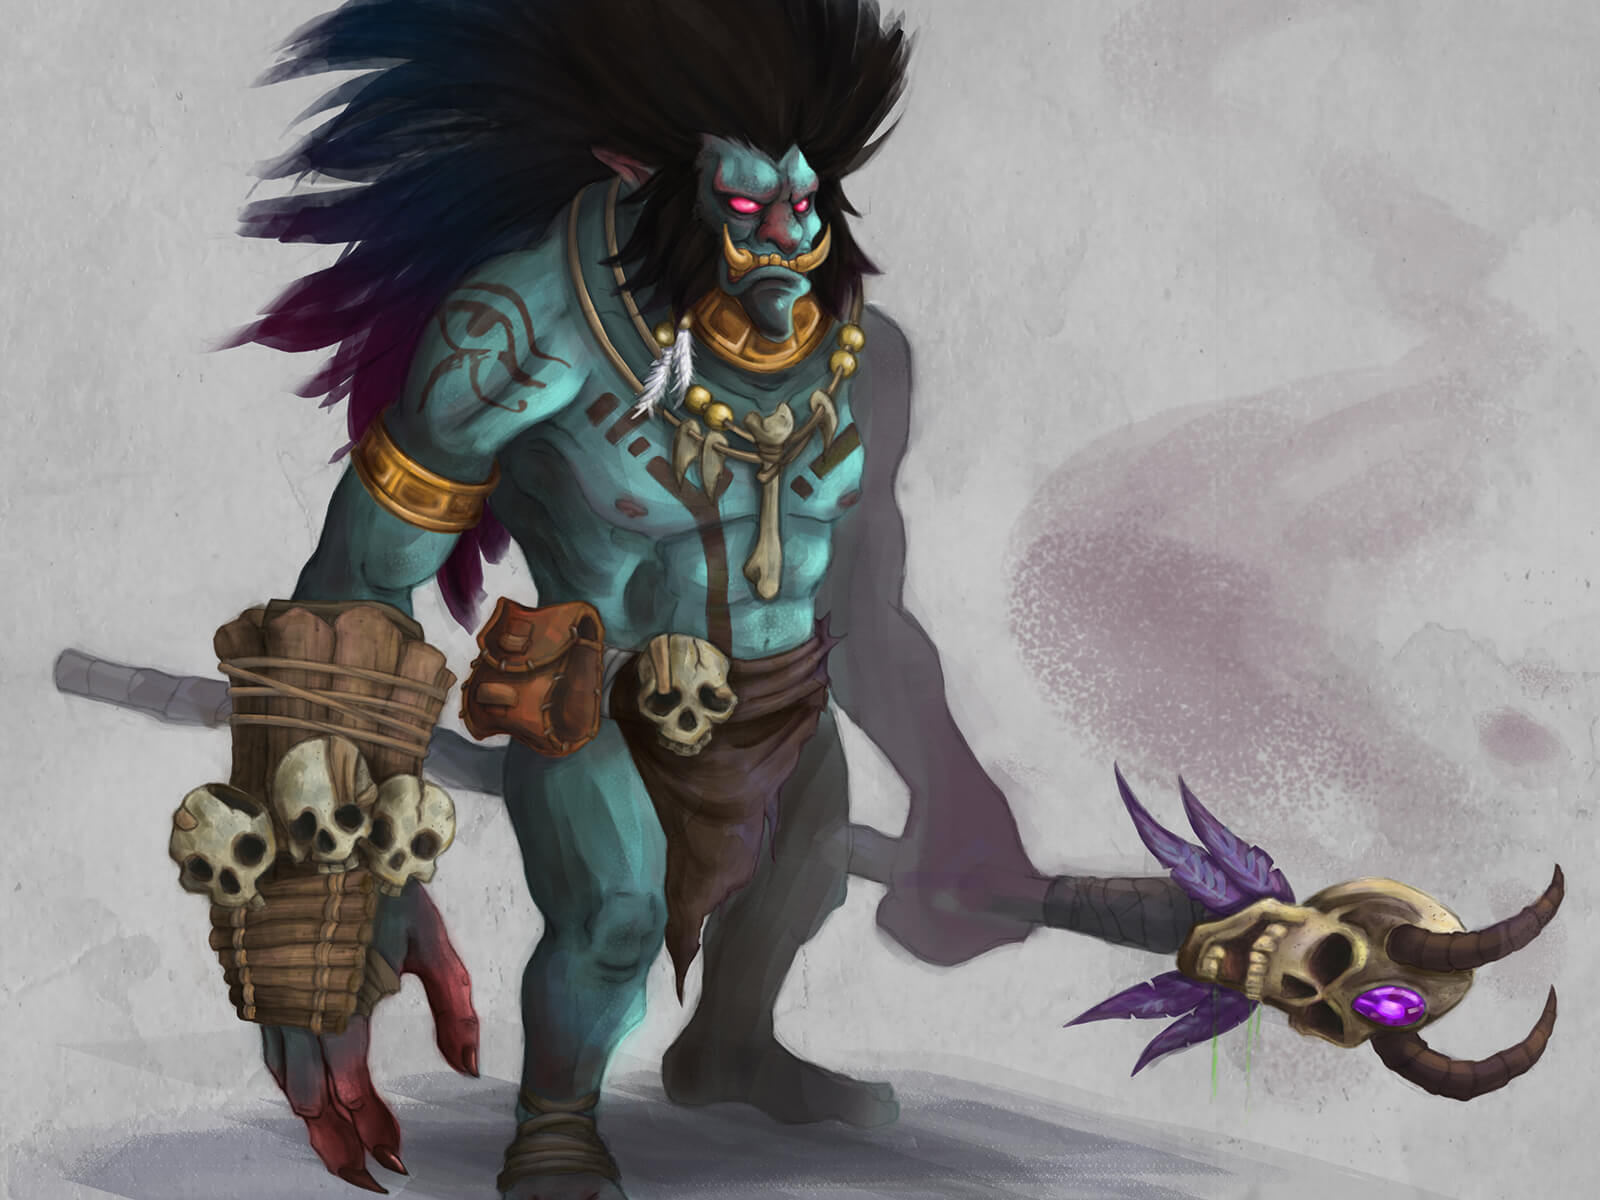 Concept art of a teal-colored monster with the features of a boar and lion, standing in shamanic dress adorned with skulls.